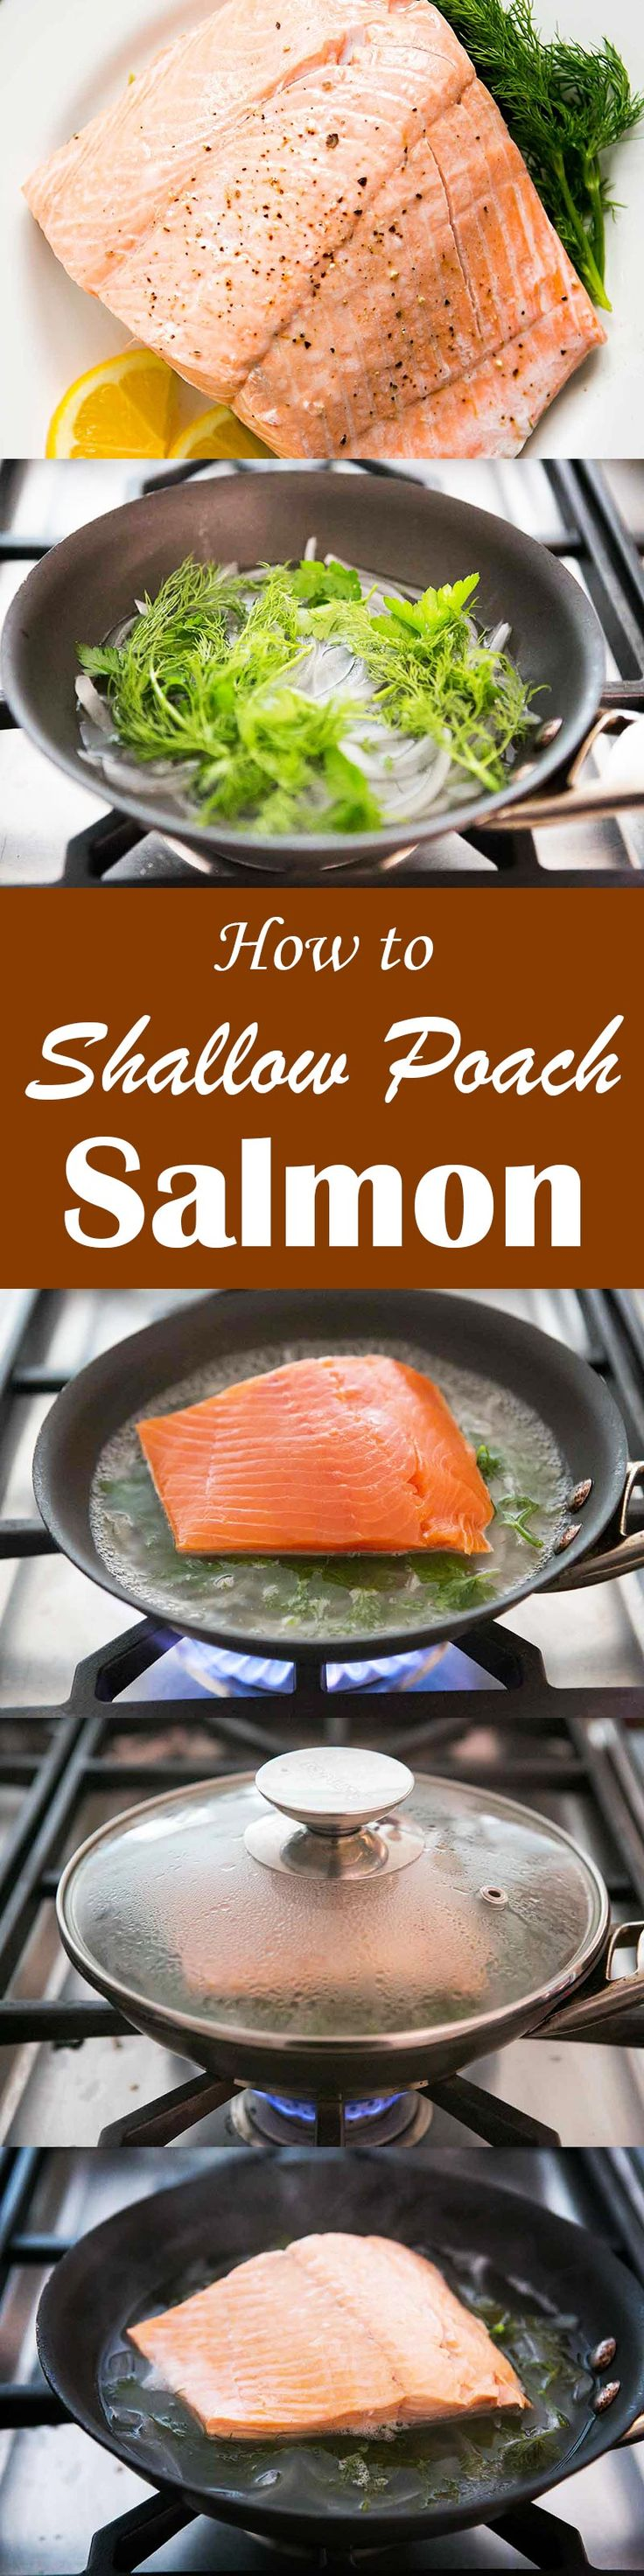 Poach salmon in only 15 minutes! Salmon poached in white wine, seasoned with fresh dill.